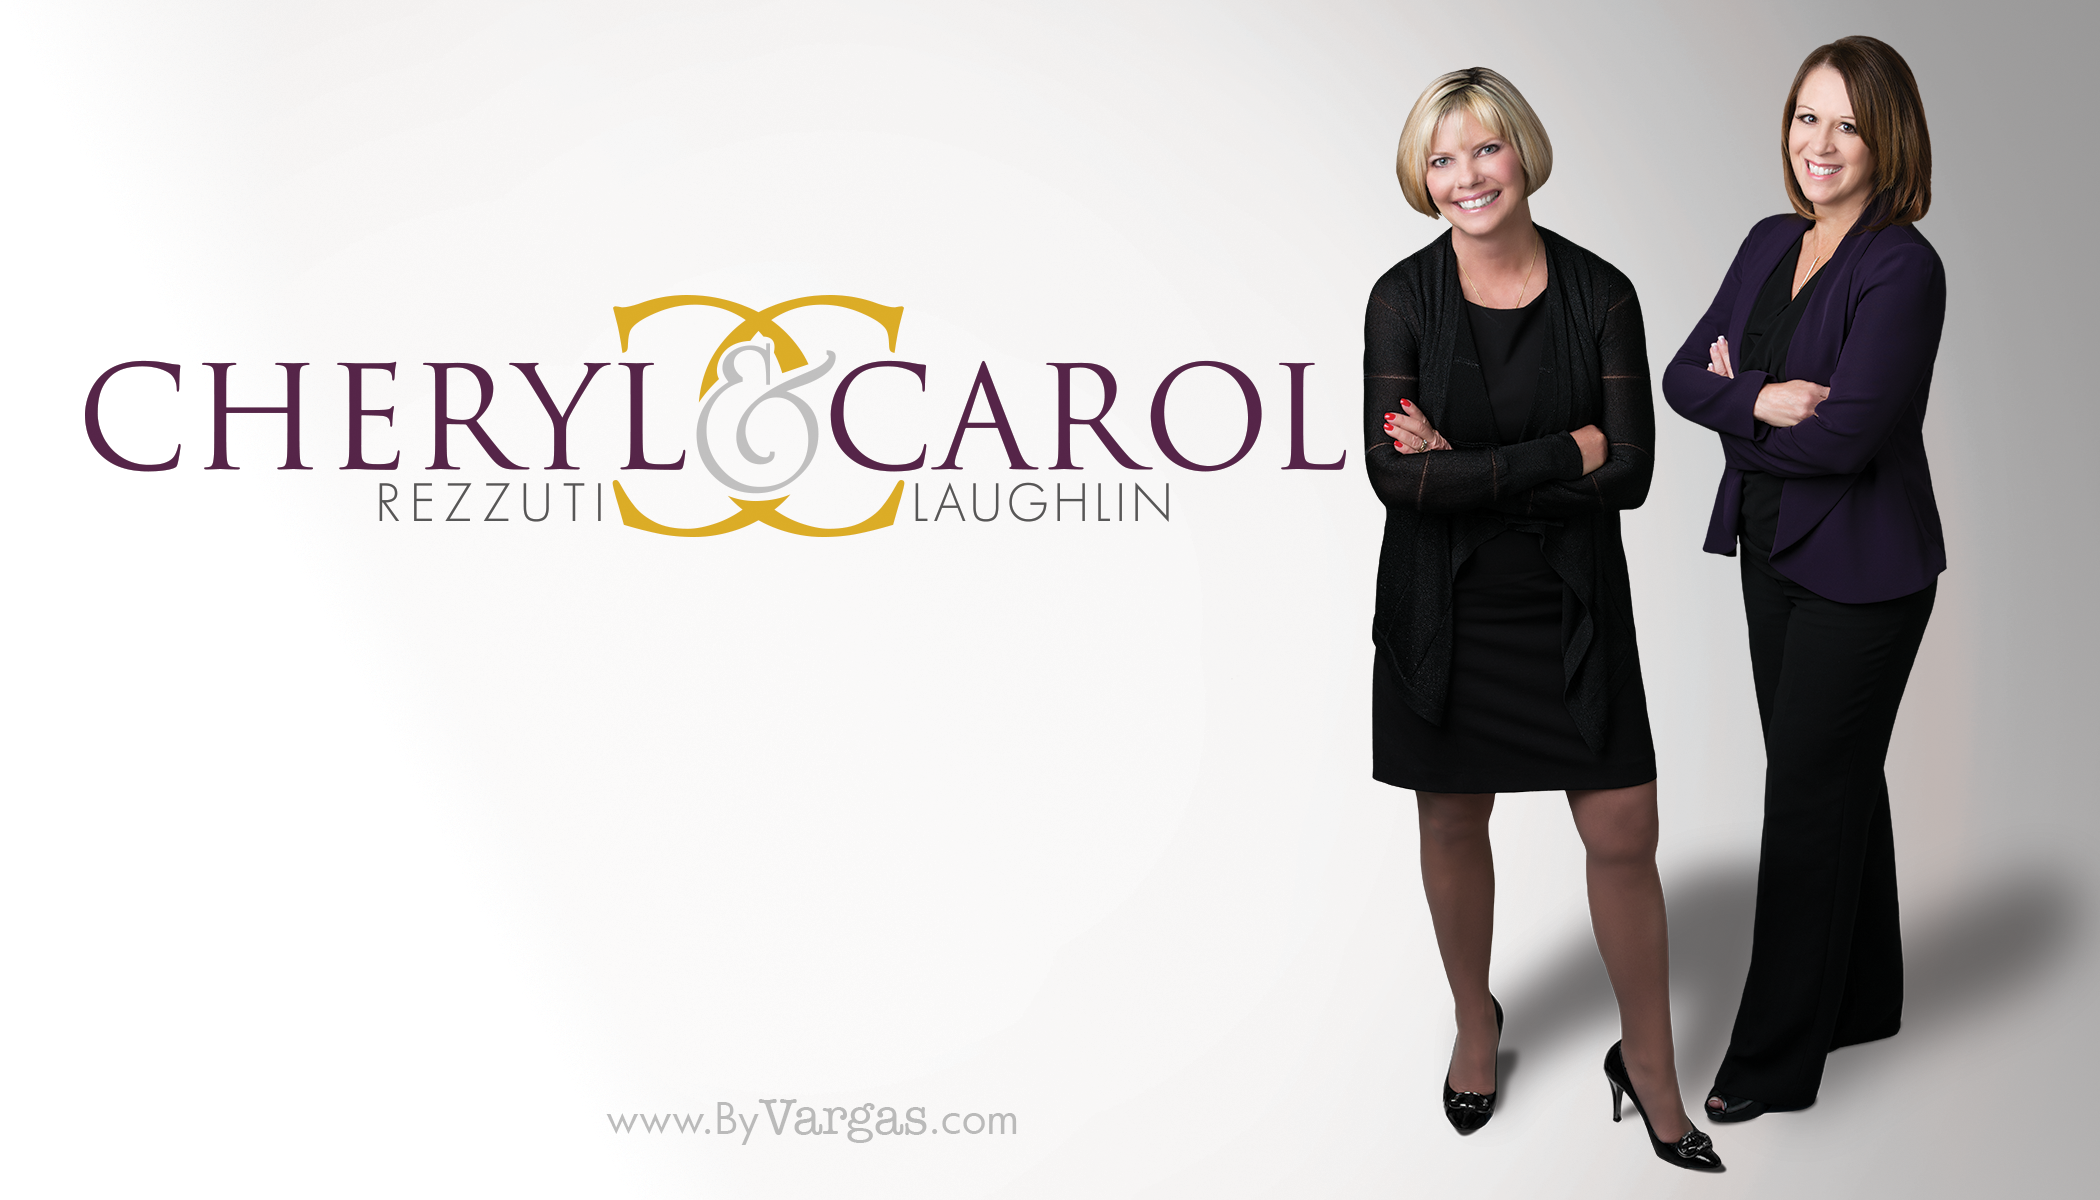 Cheryl-and-Carol-Branding-by-Vargas-Photo-Design.png